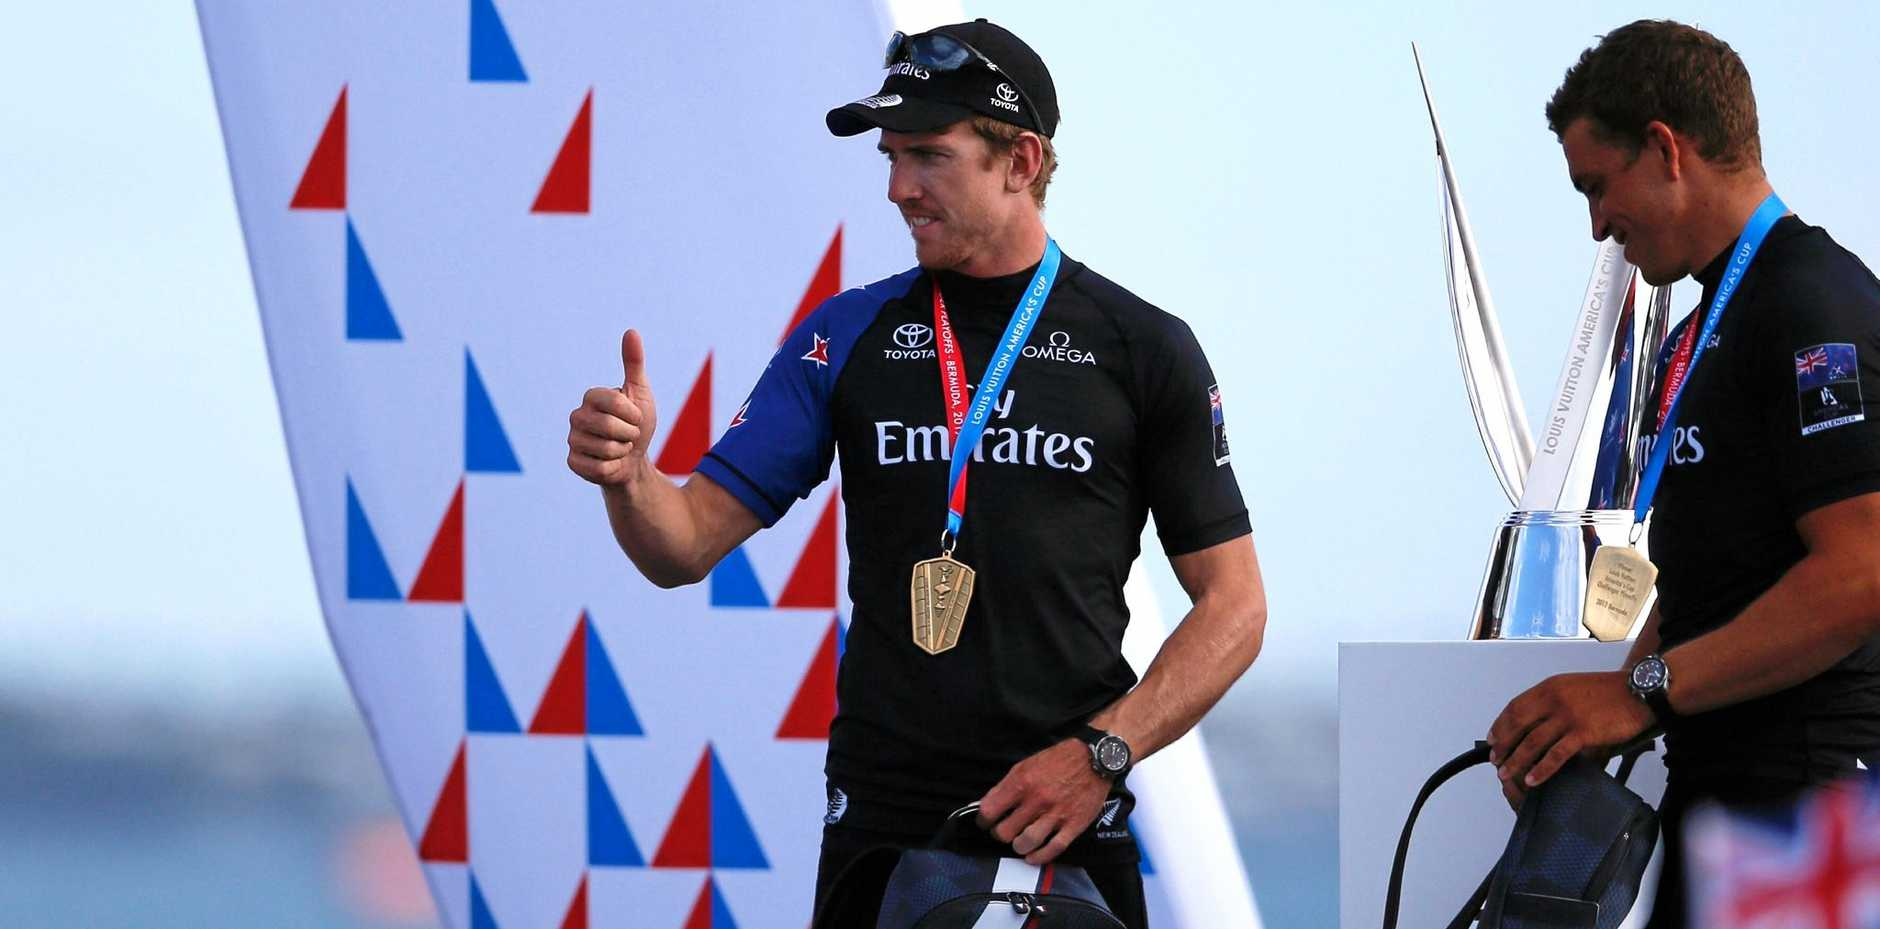 Emirates Team New Zealand skipper Peter Burling gestures to the crowd before the trophy ceremony after winning the America's Cup Challenger Playoffs in Bermuda.